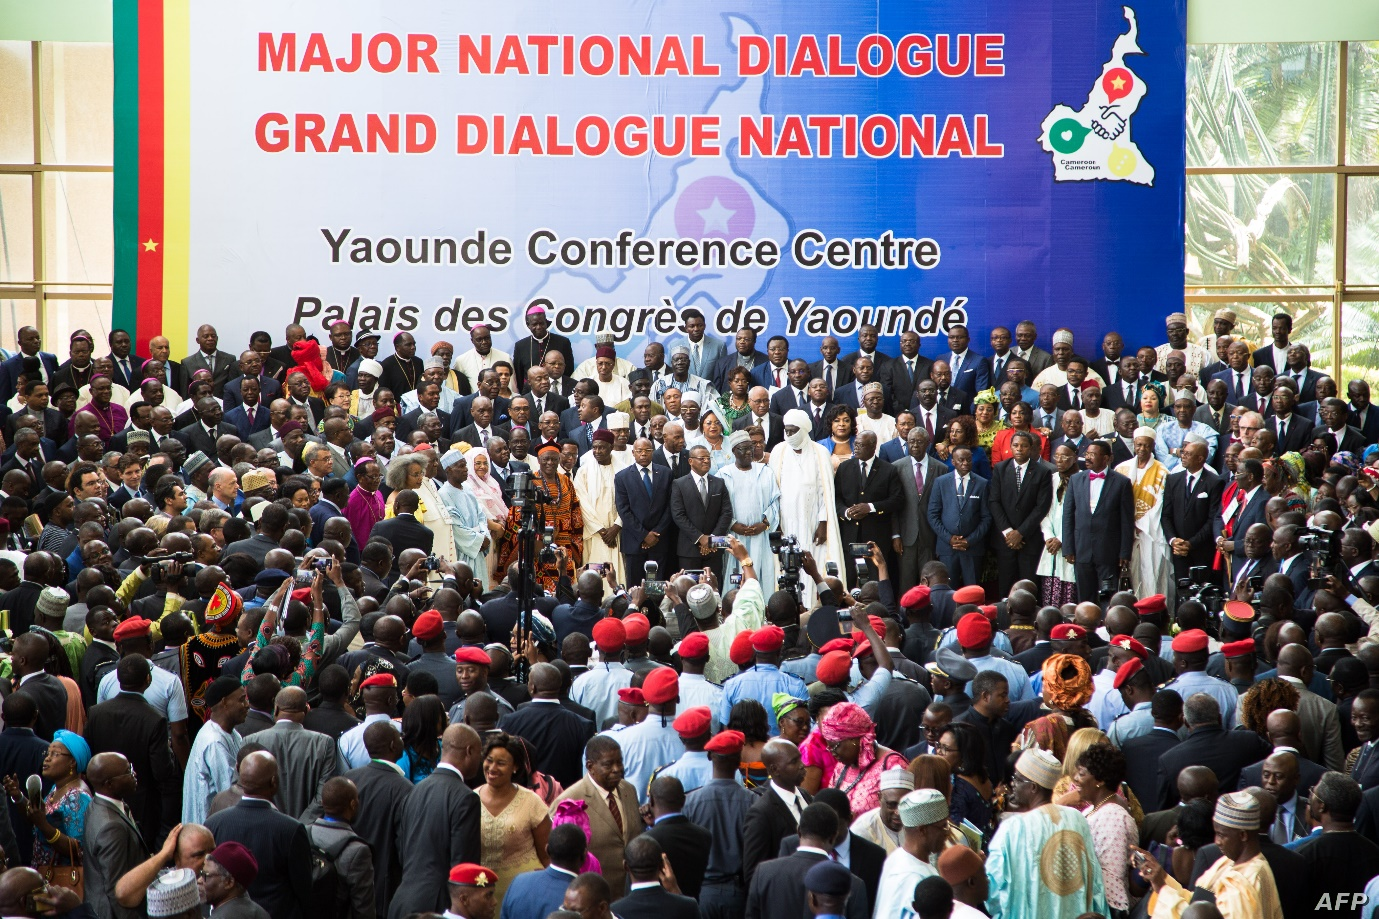 Attendees during the closing ceremony of the Major National Dialogue